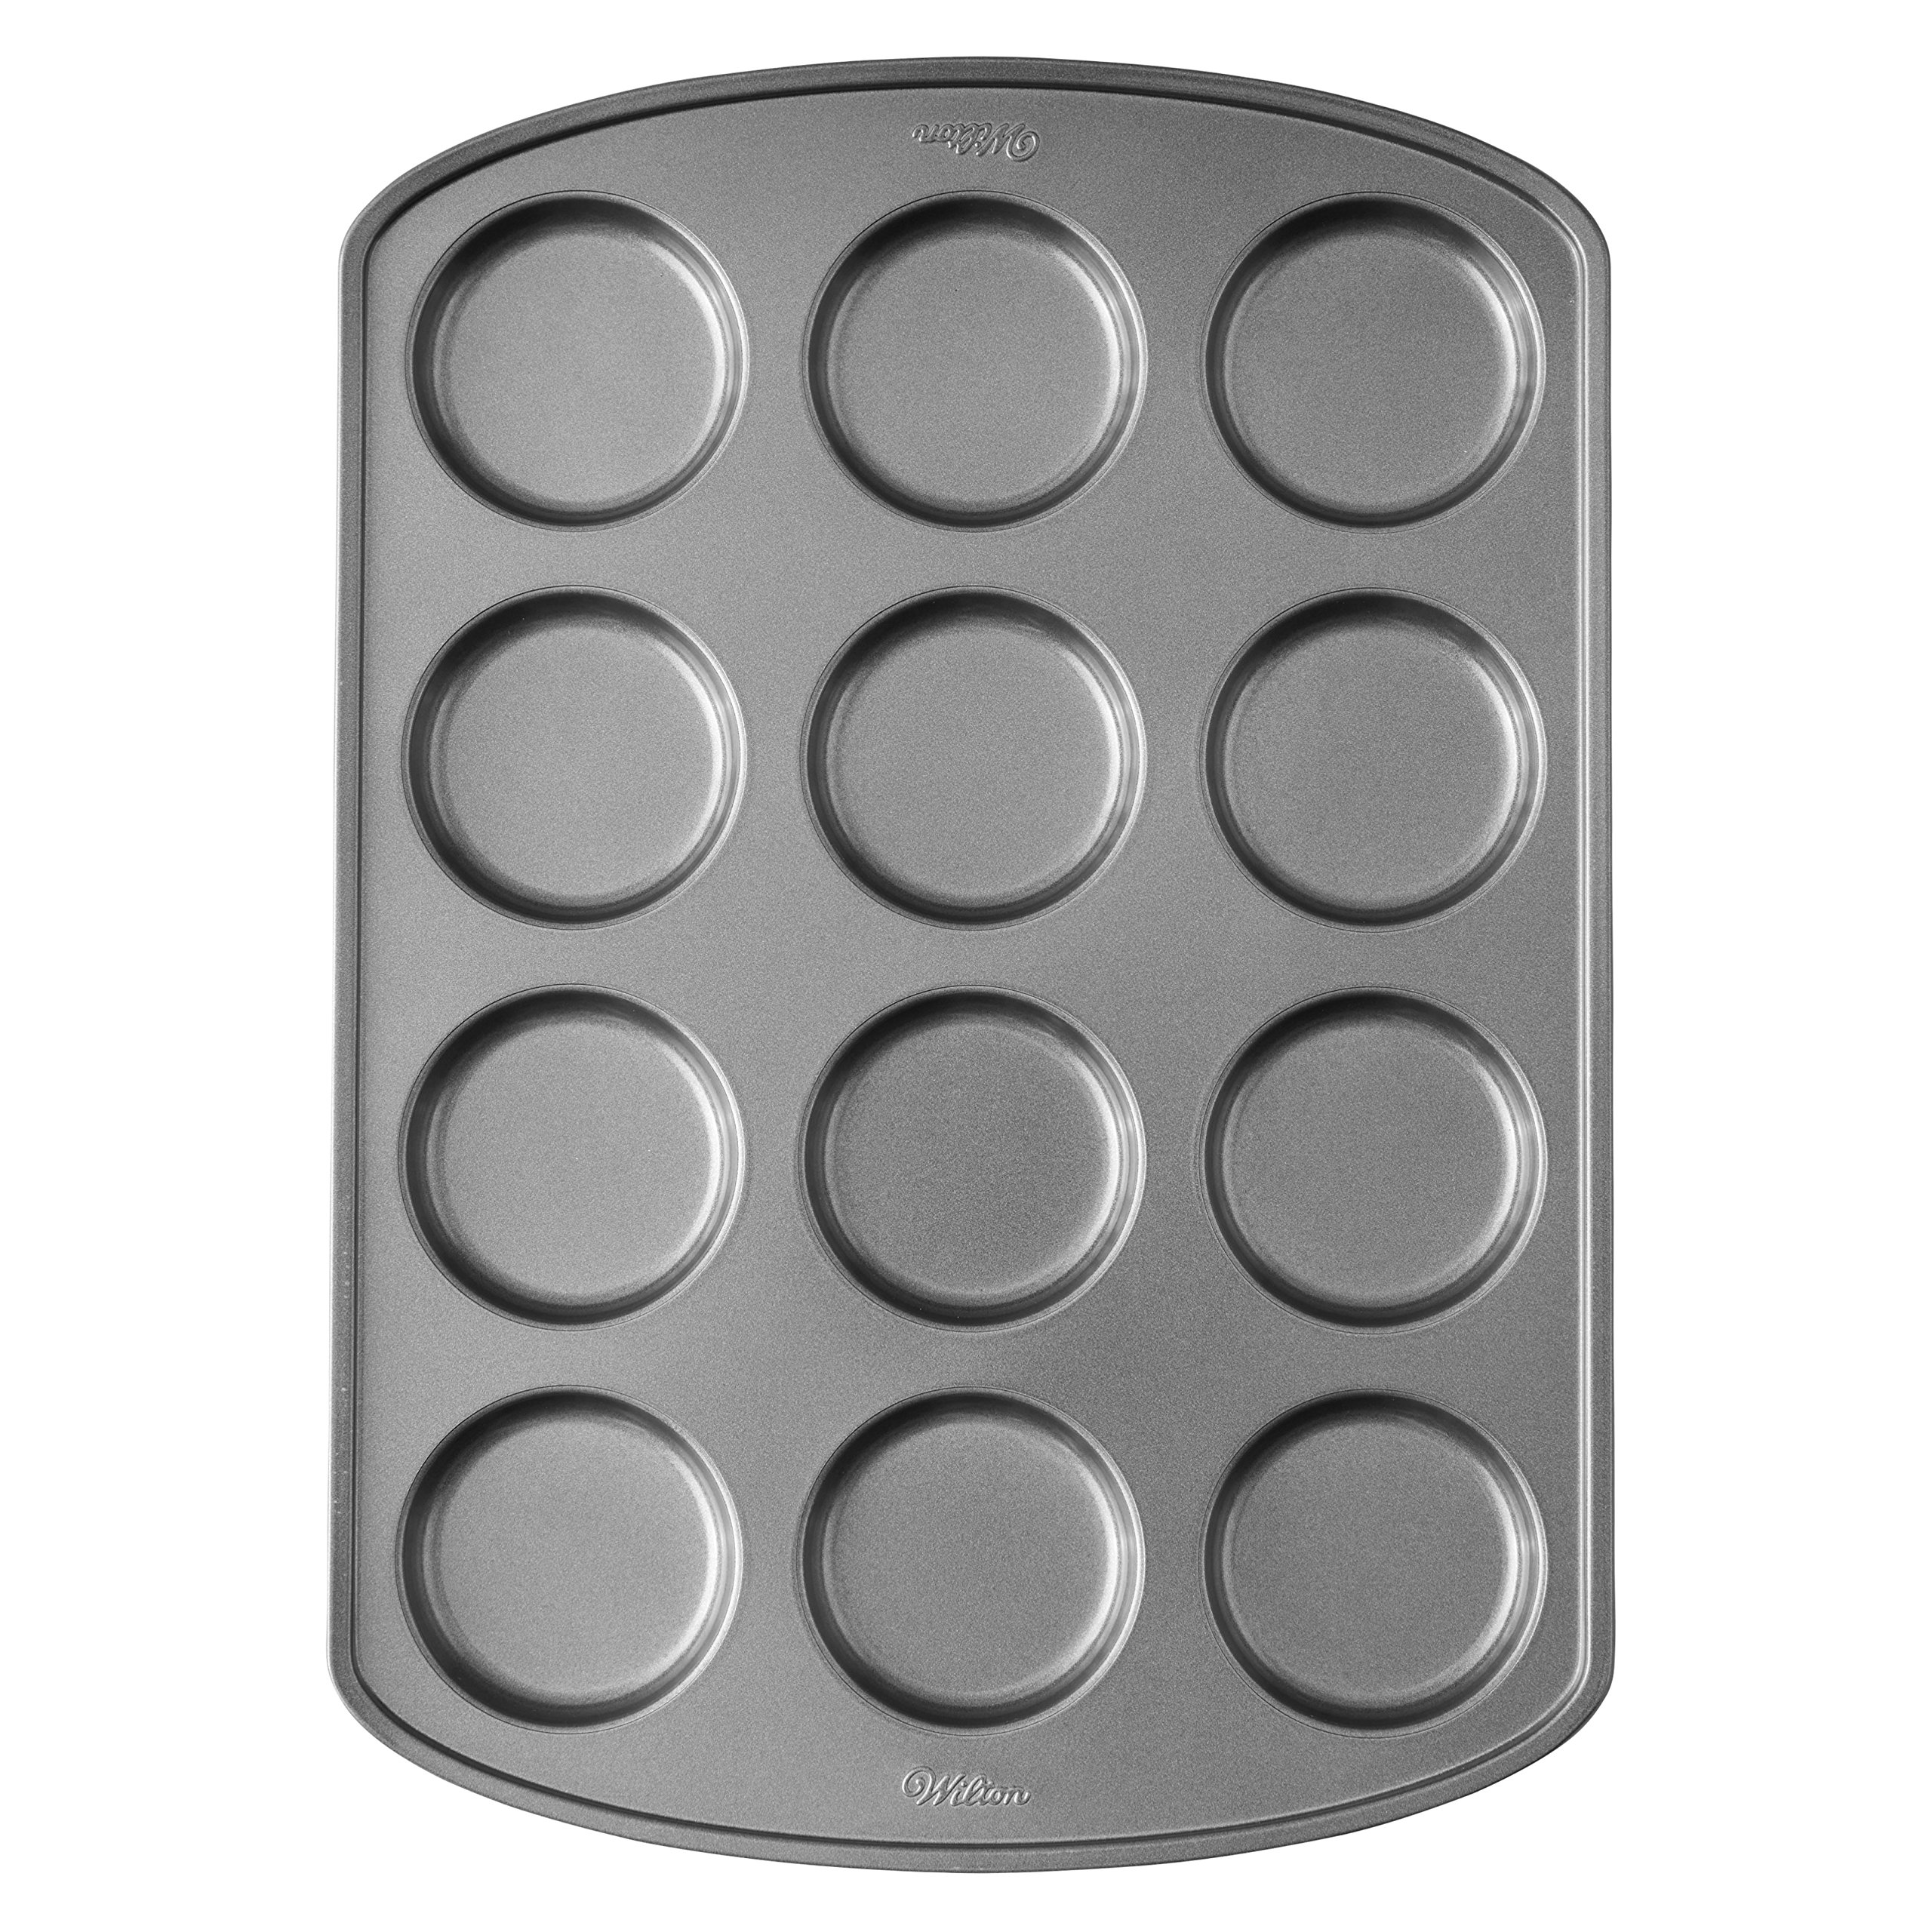 Wilton Perfect Results Premium Non-Stick Muffin Top Baking Pan, 12-Cup by Wilton